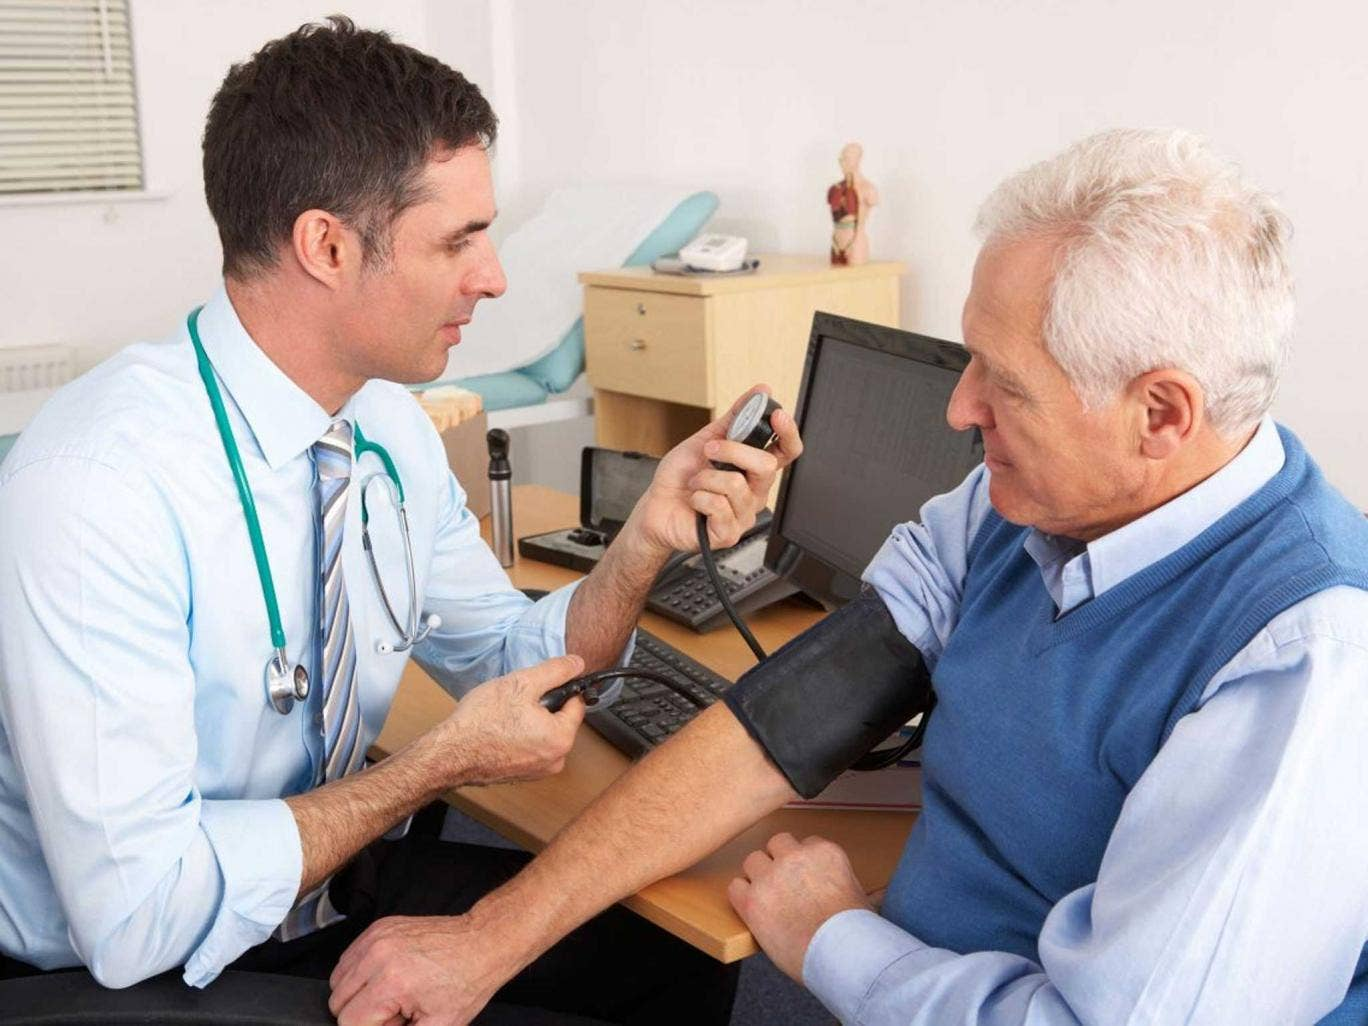 GPs are responsible for 90 per cent of patient contacts within the NHS but receive less than 9 per cent of NHS cash